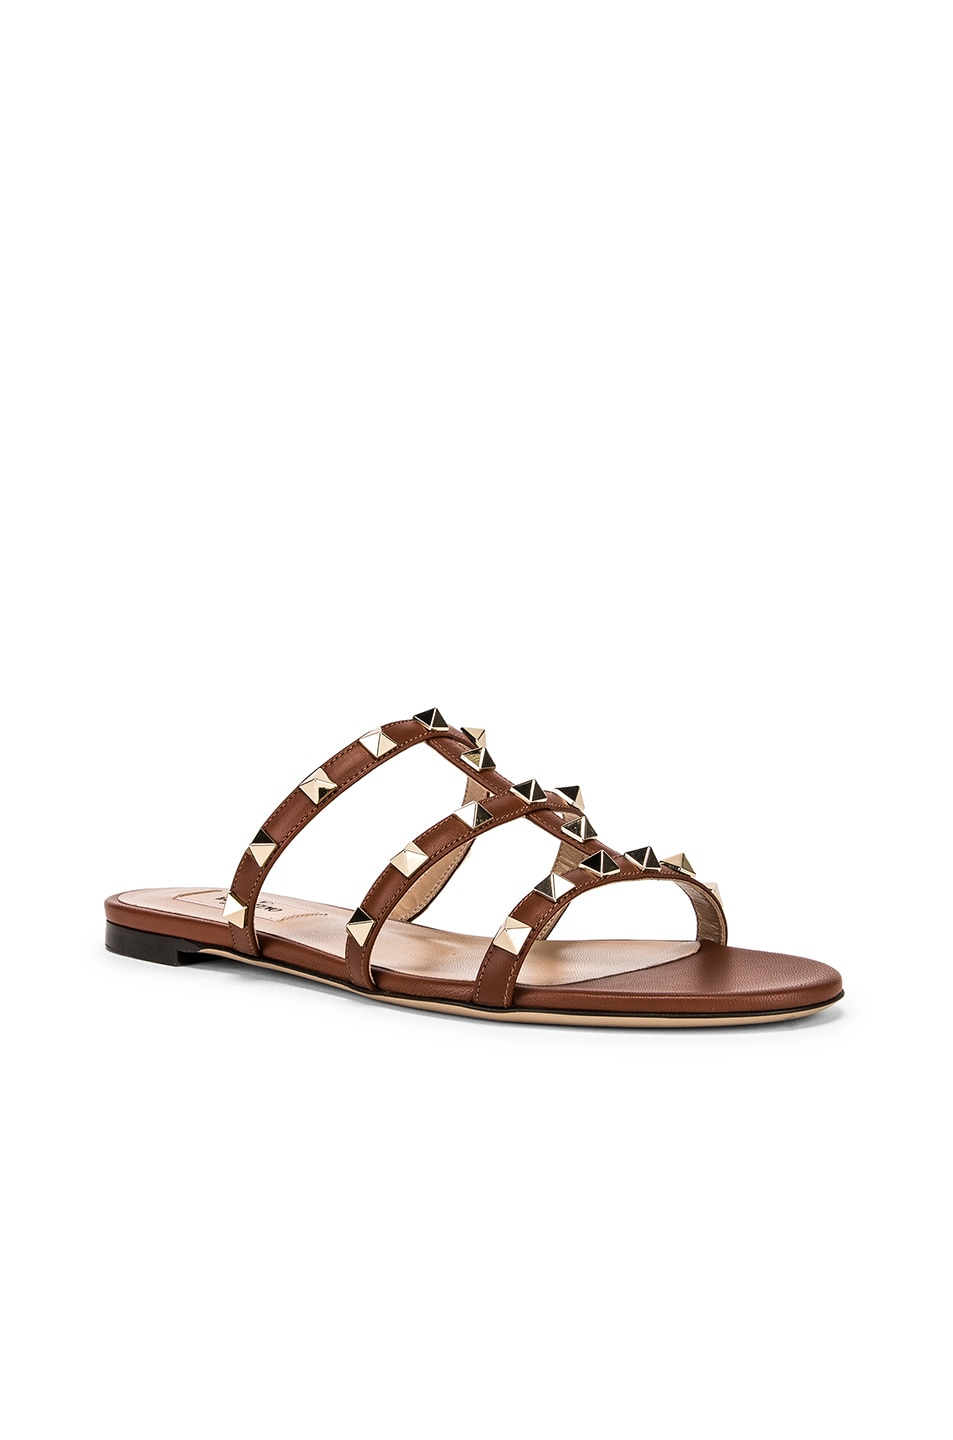 Image 2 of Valentino Rockstud Slides in Bright Cognac & Bright Cognac